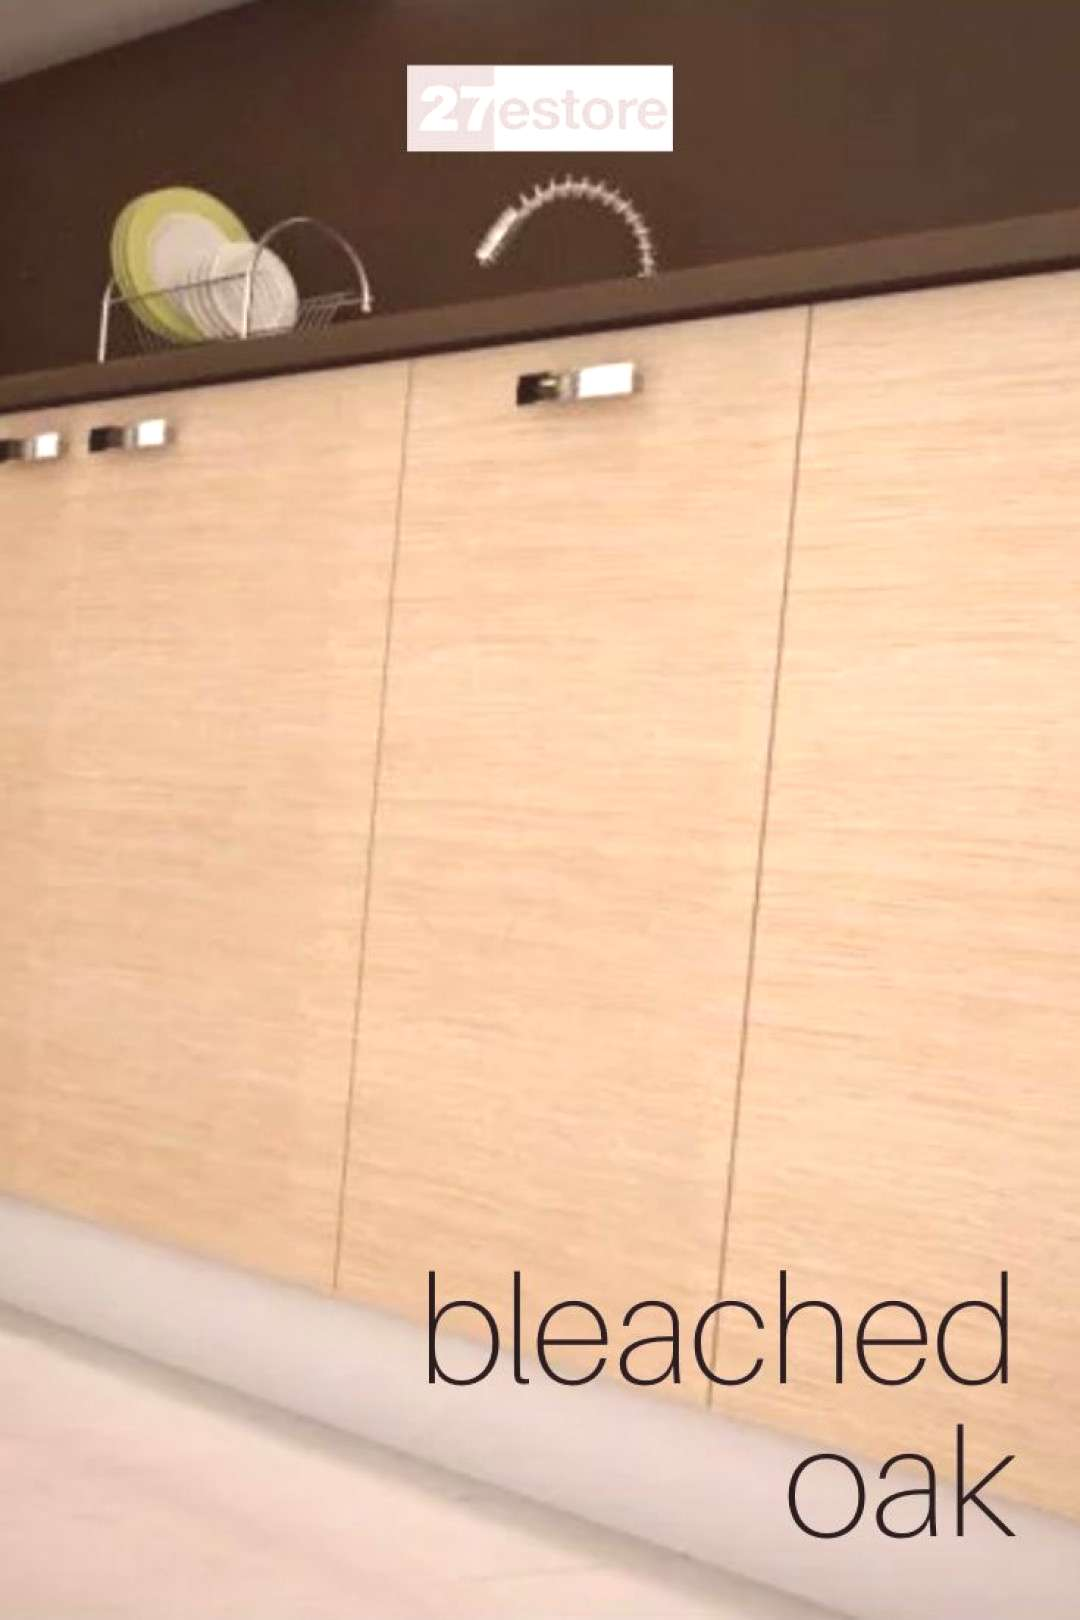 BLEACHED OAK CABINET DOORS This is what we call contemporary elegance at highest quality standards!